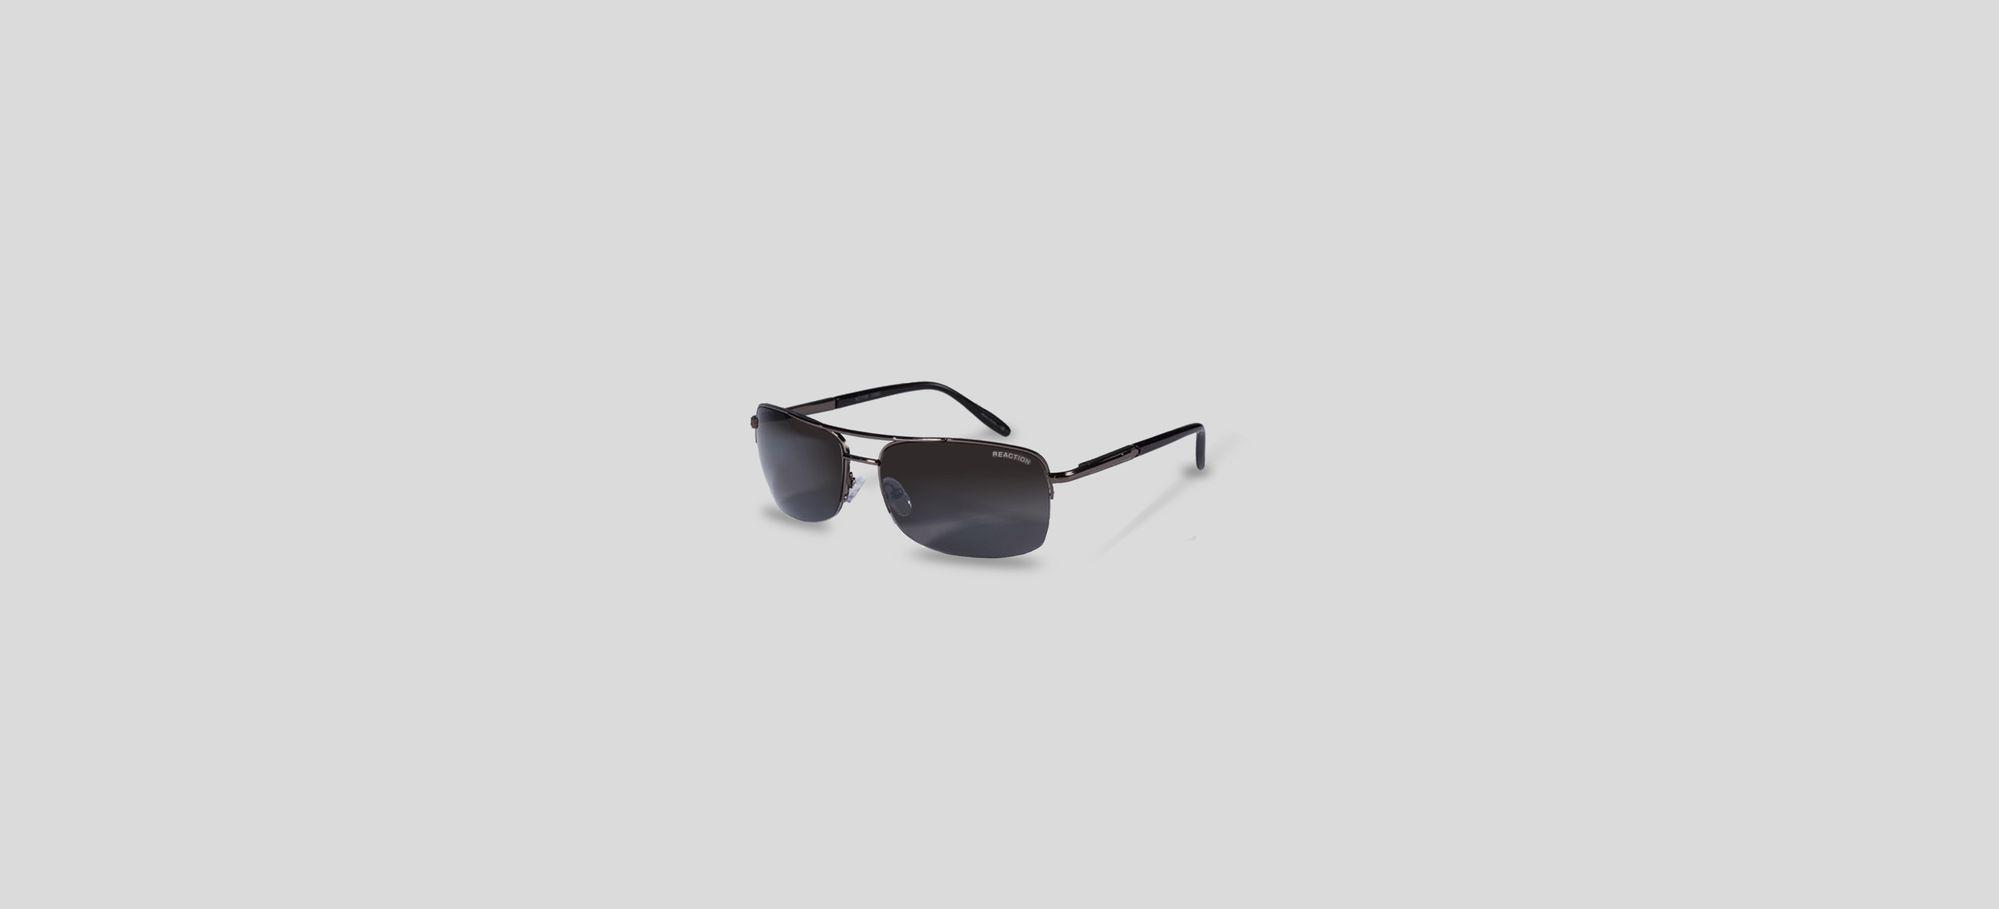 Shiny Black Vintage Smoke Sunglasses Kenneth Cole Reaction